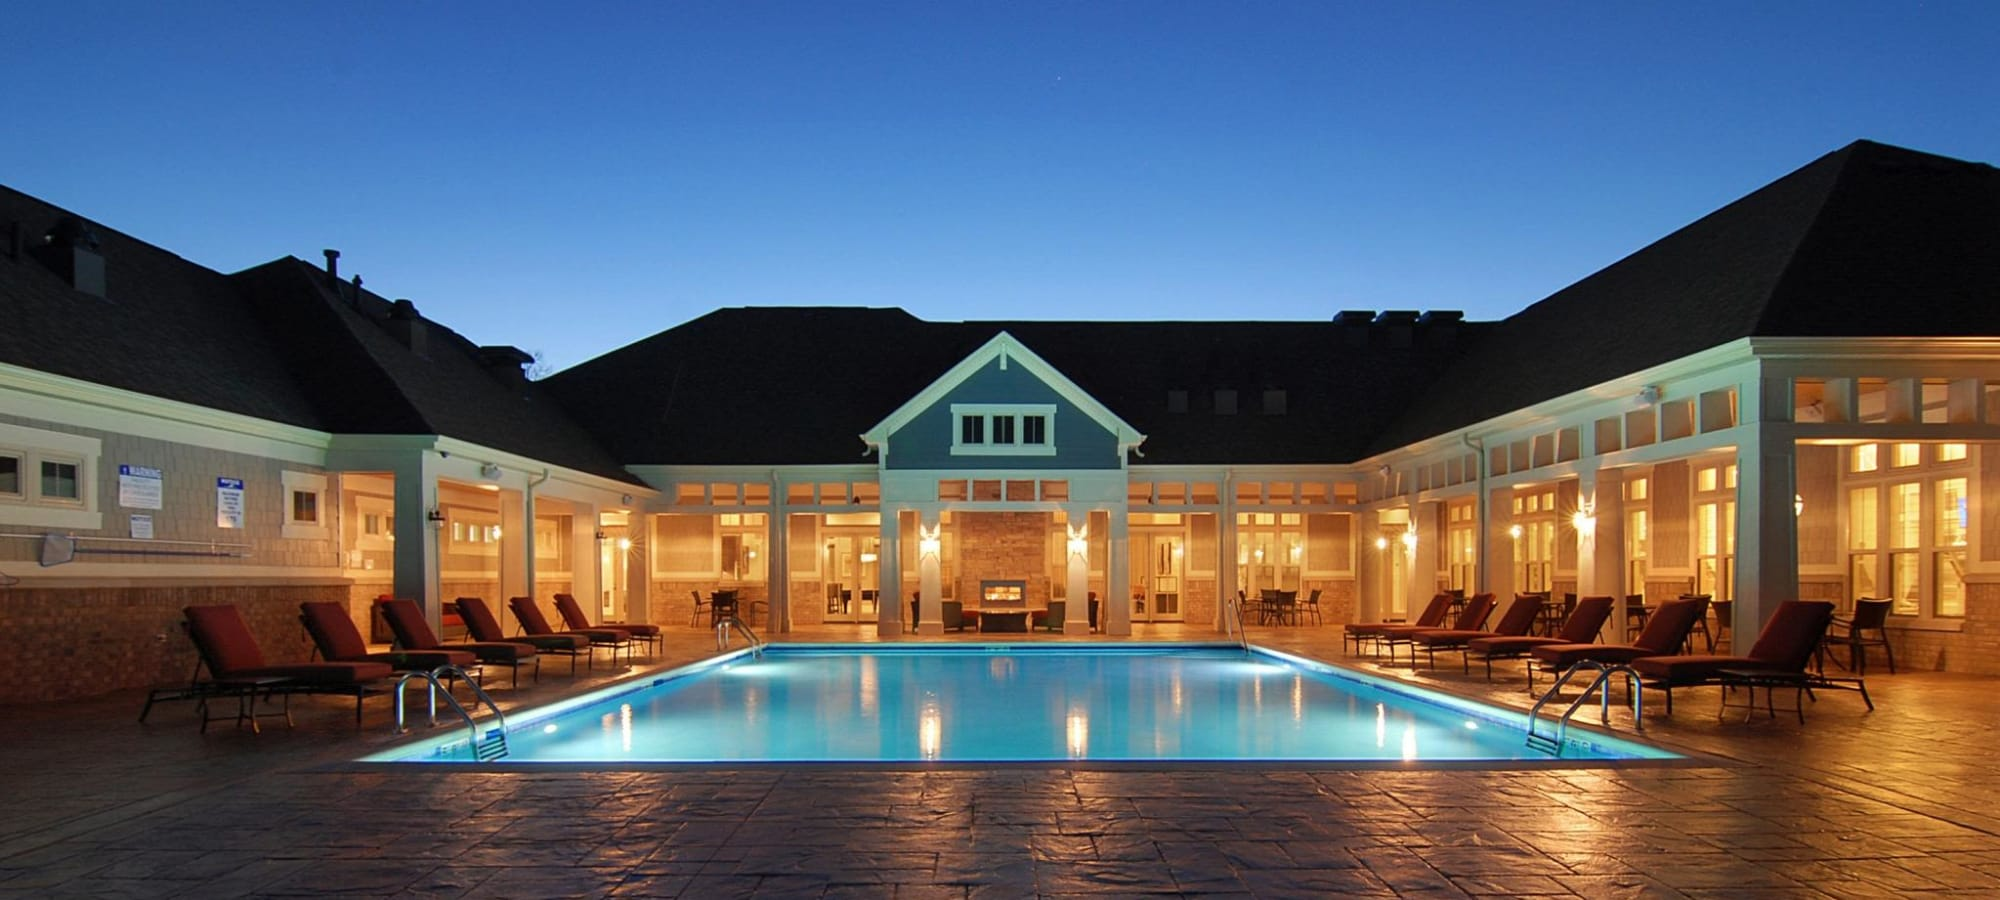 Apartments at The Oaks Of Vernon Hills in Vernon Hills, Illinois